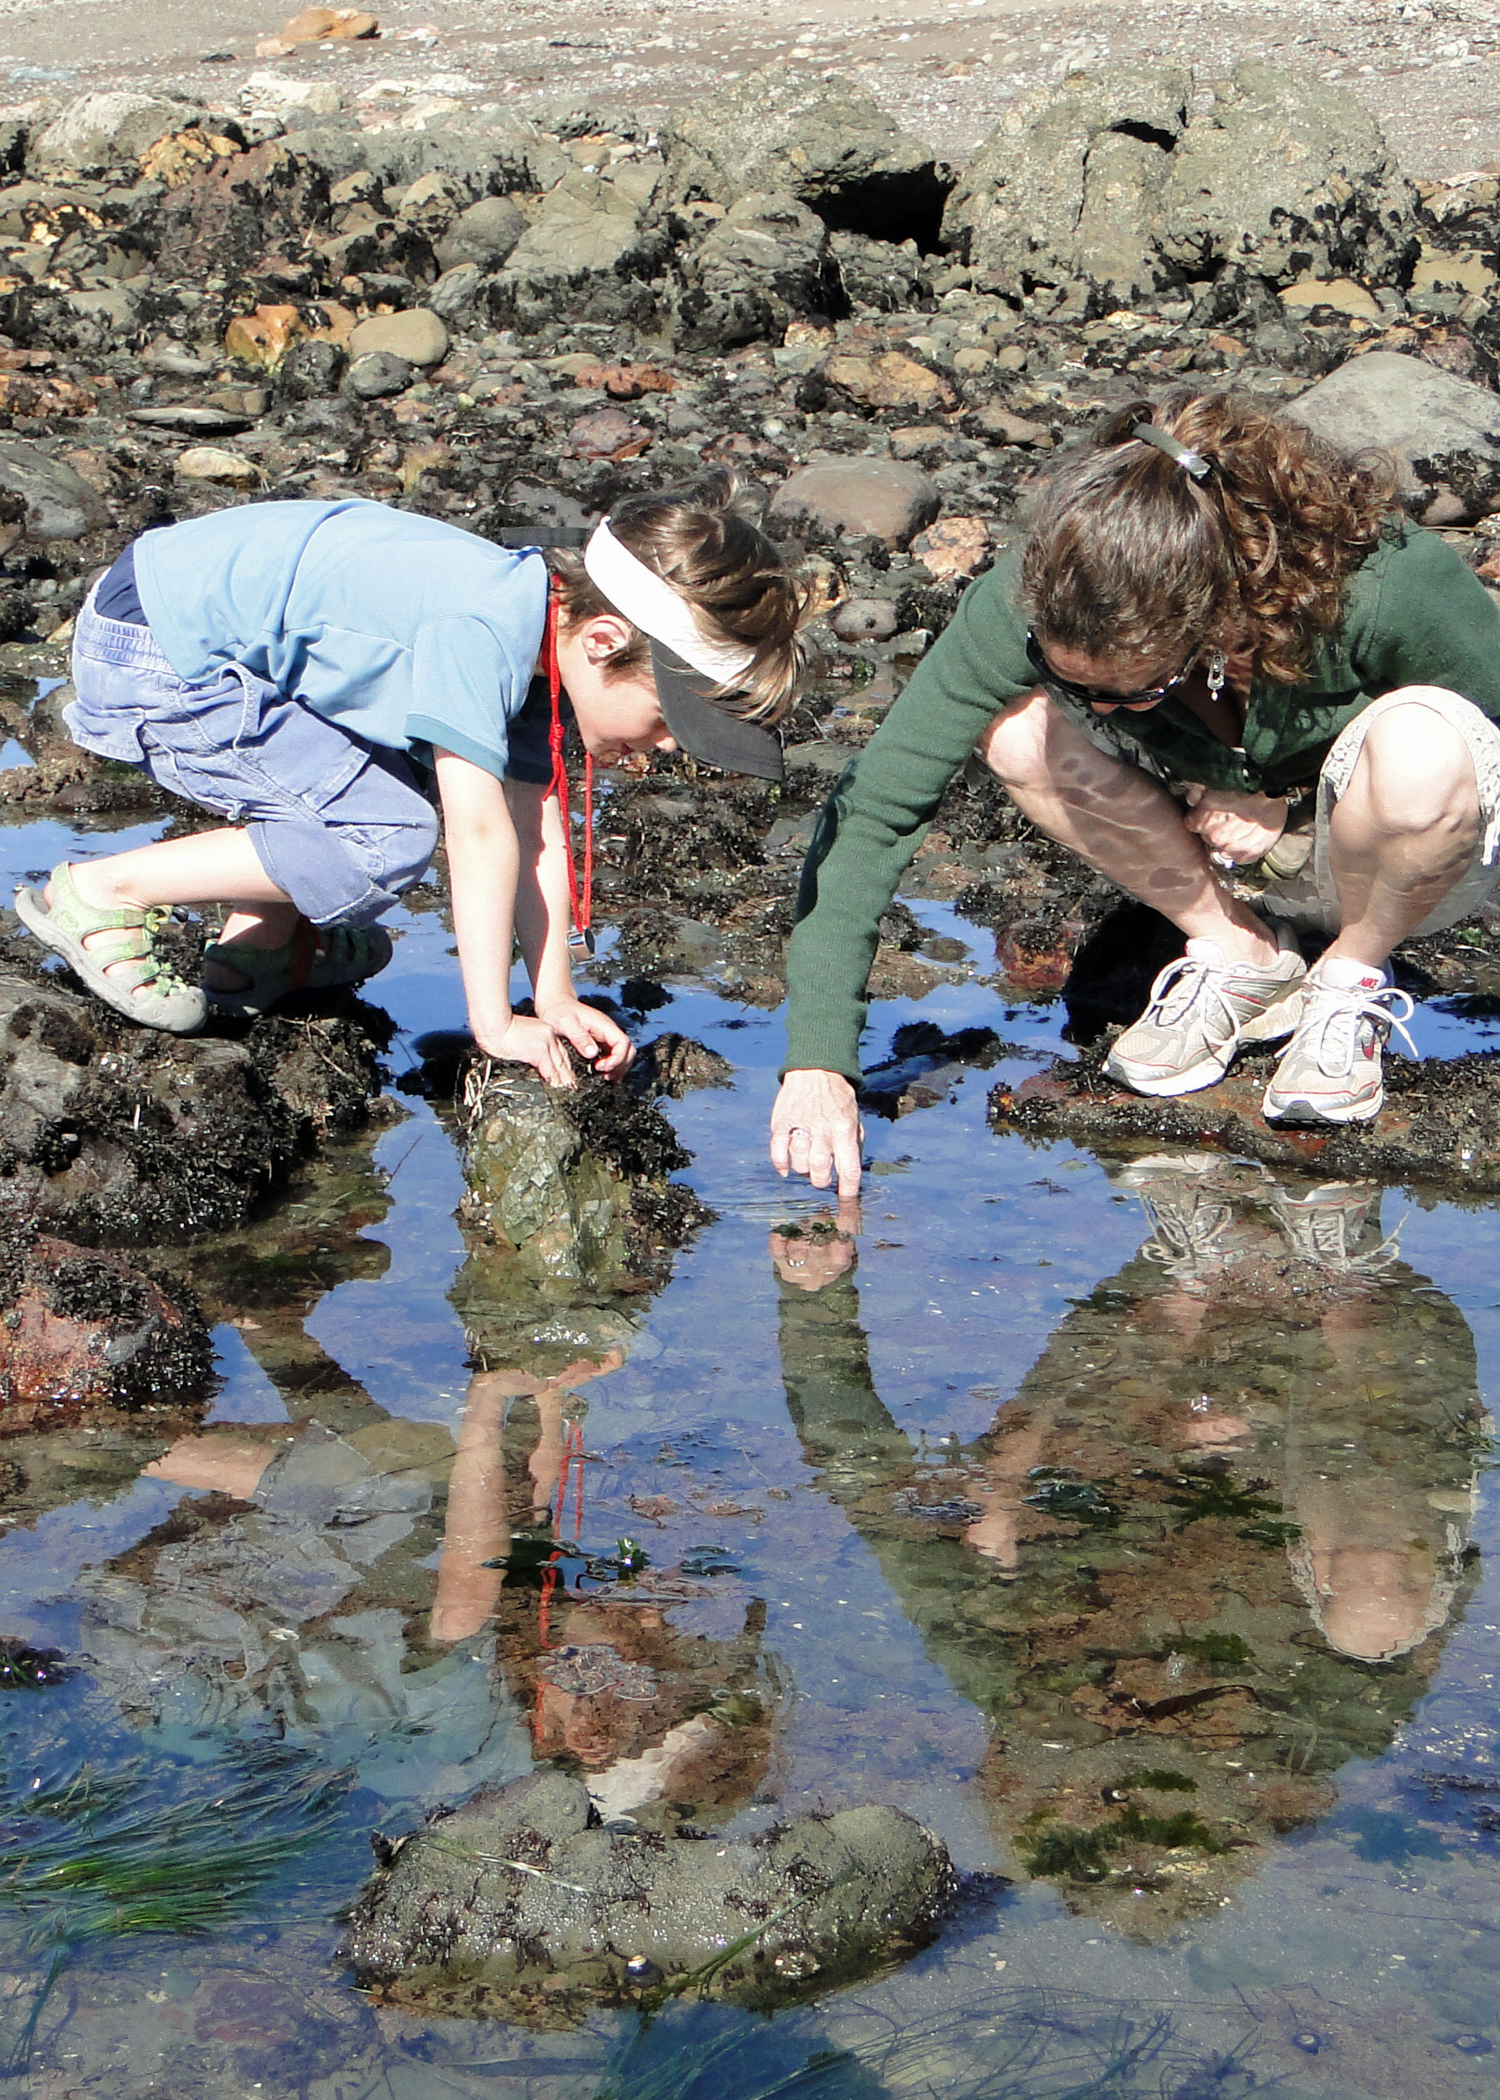 Child and adult reach into tide pool